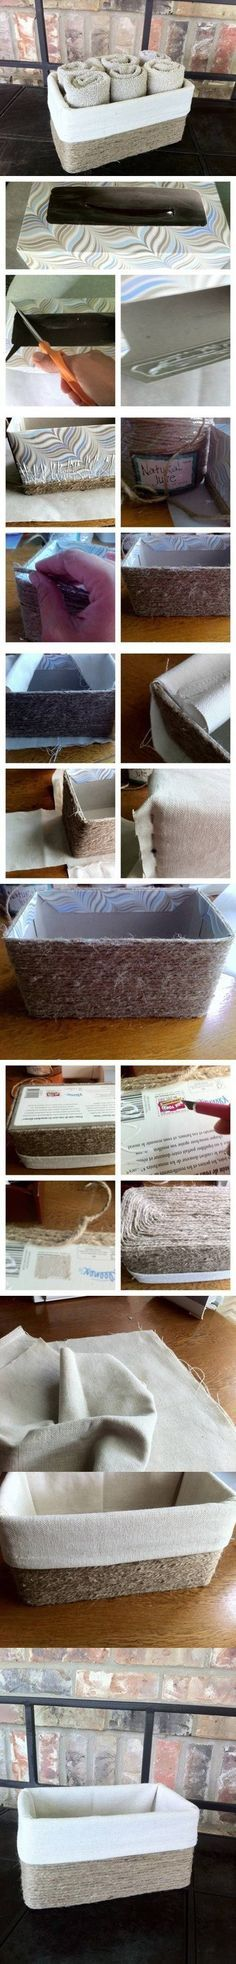 DIY Jute Basket from Cardboard Box DIY Projects /...